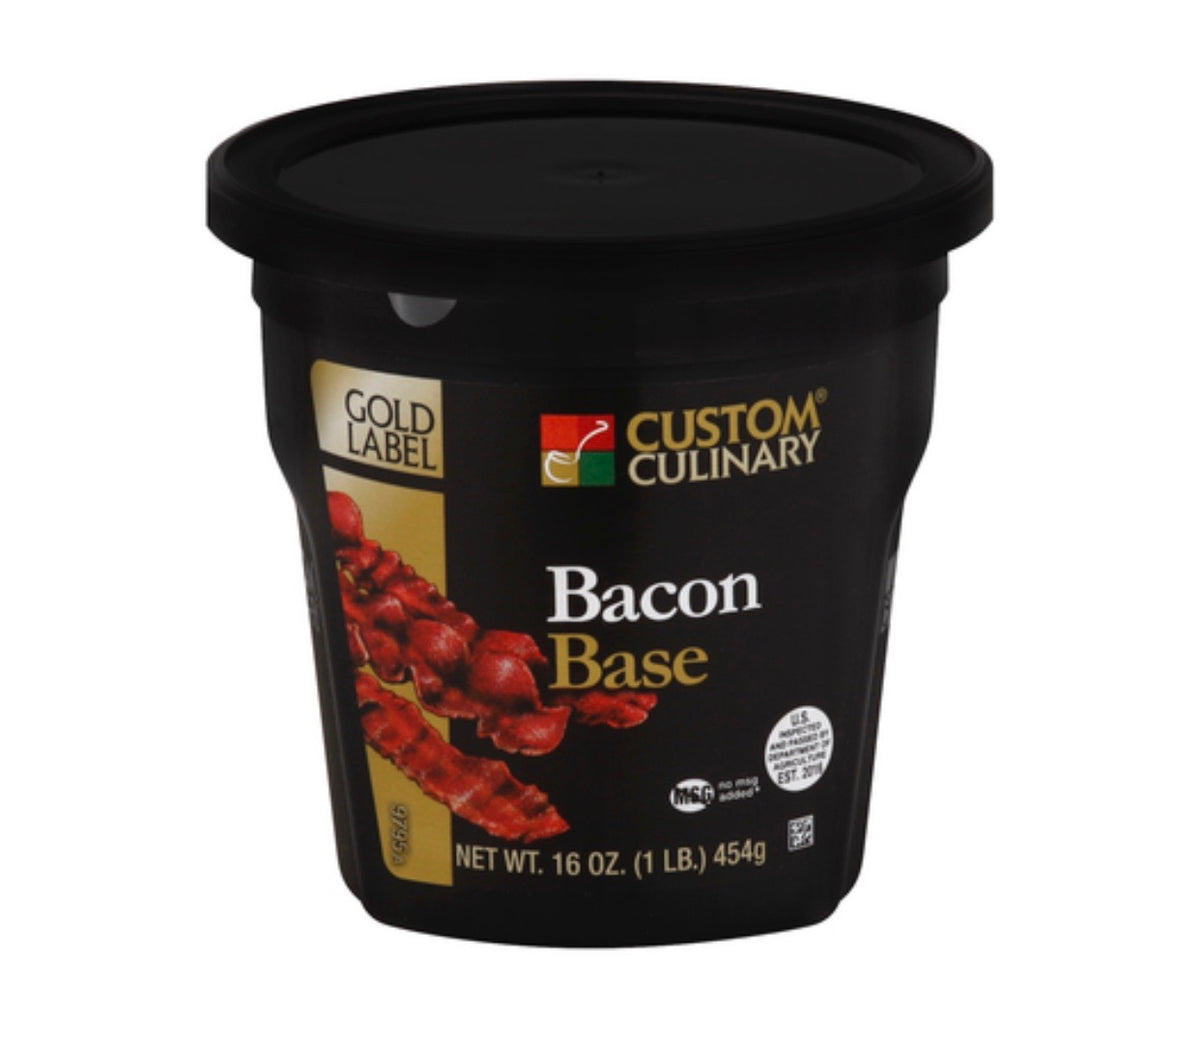 Base Custom Culinary Gold Label Bacon 1lbs